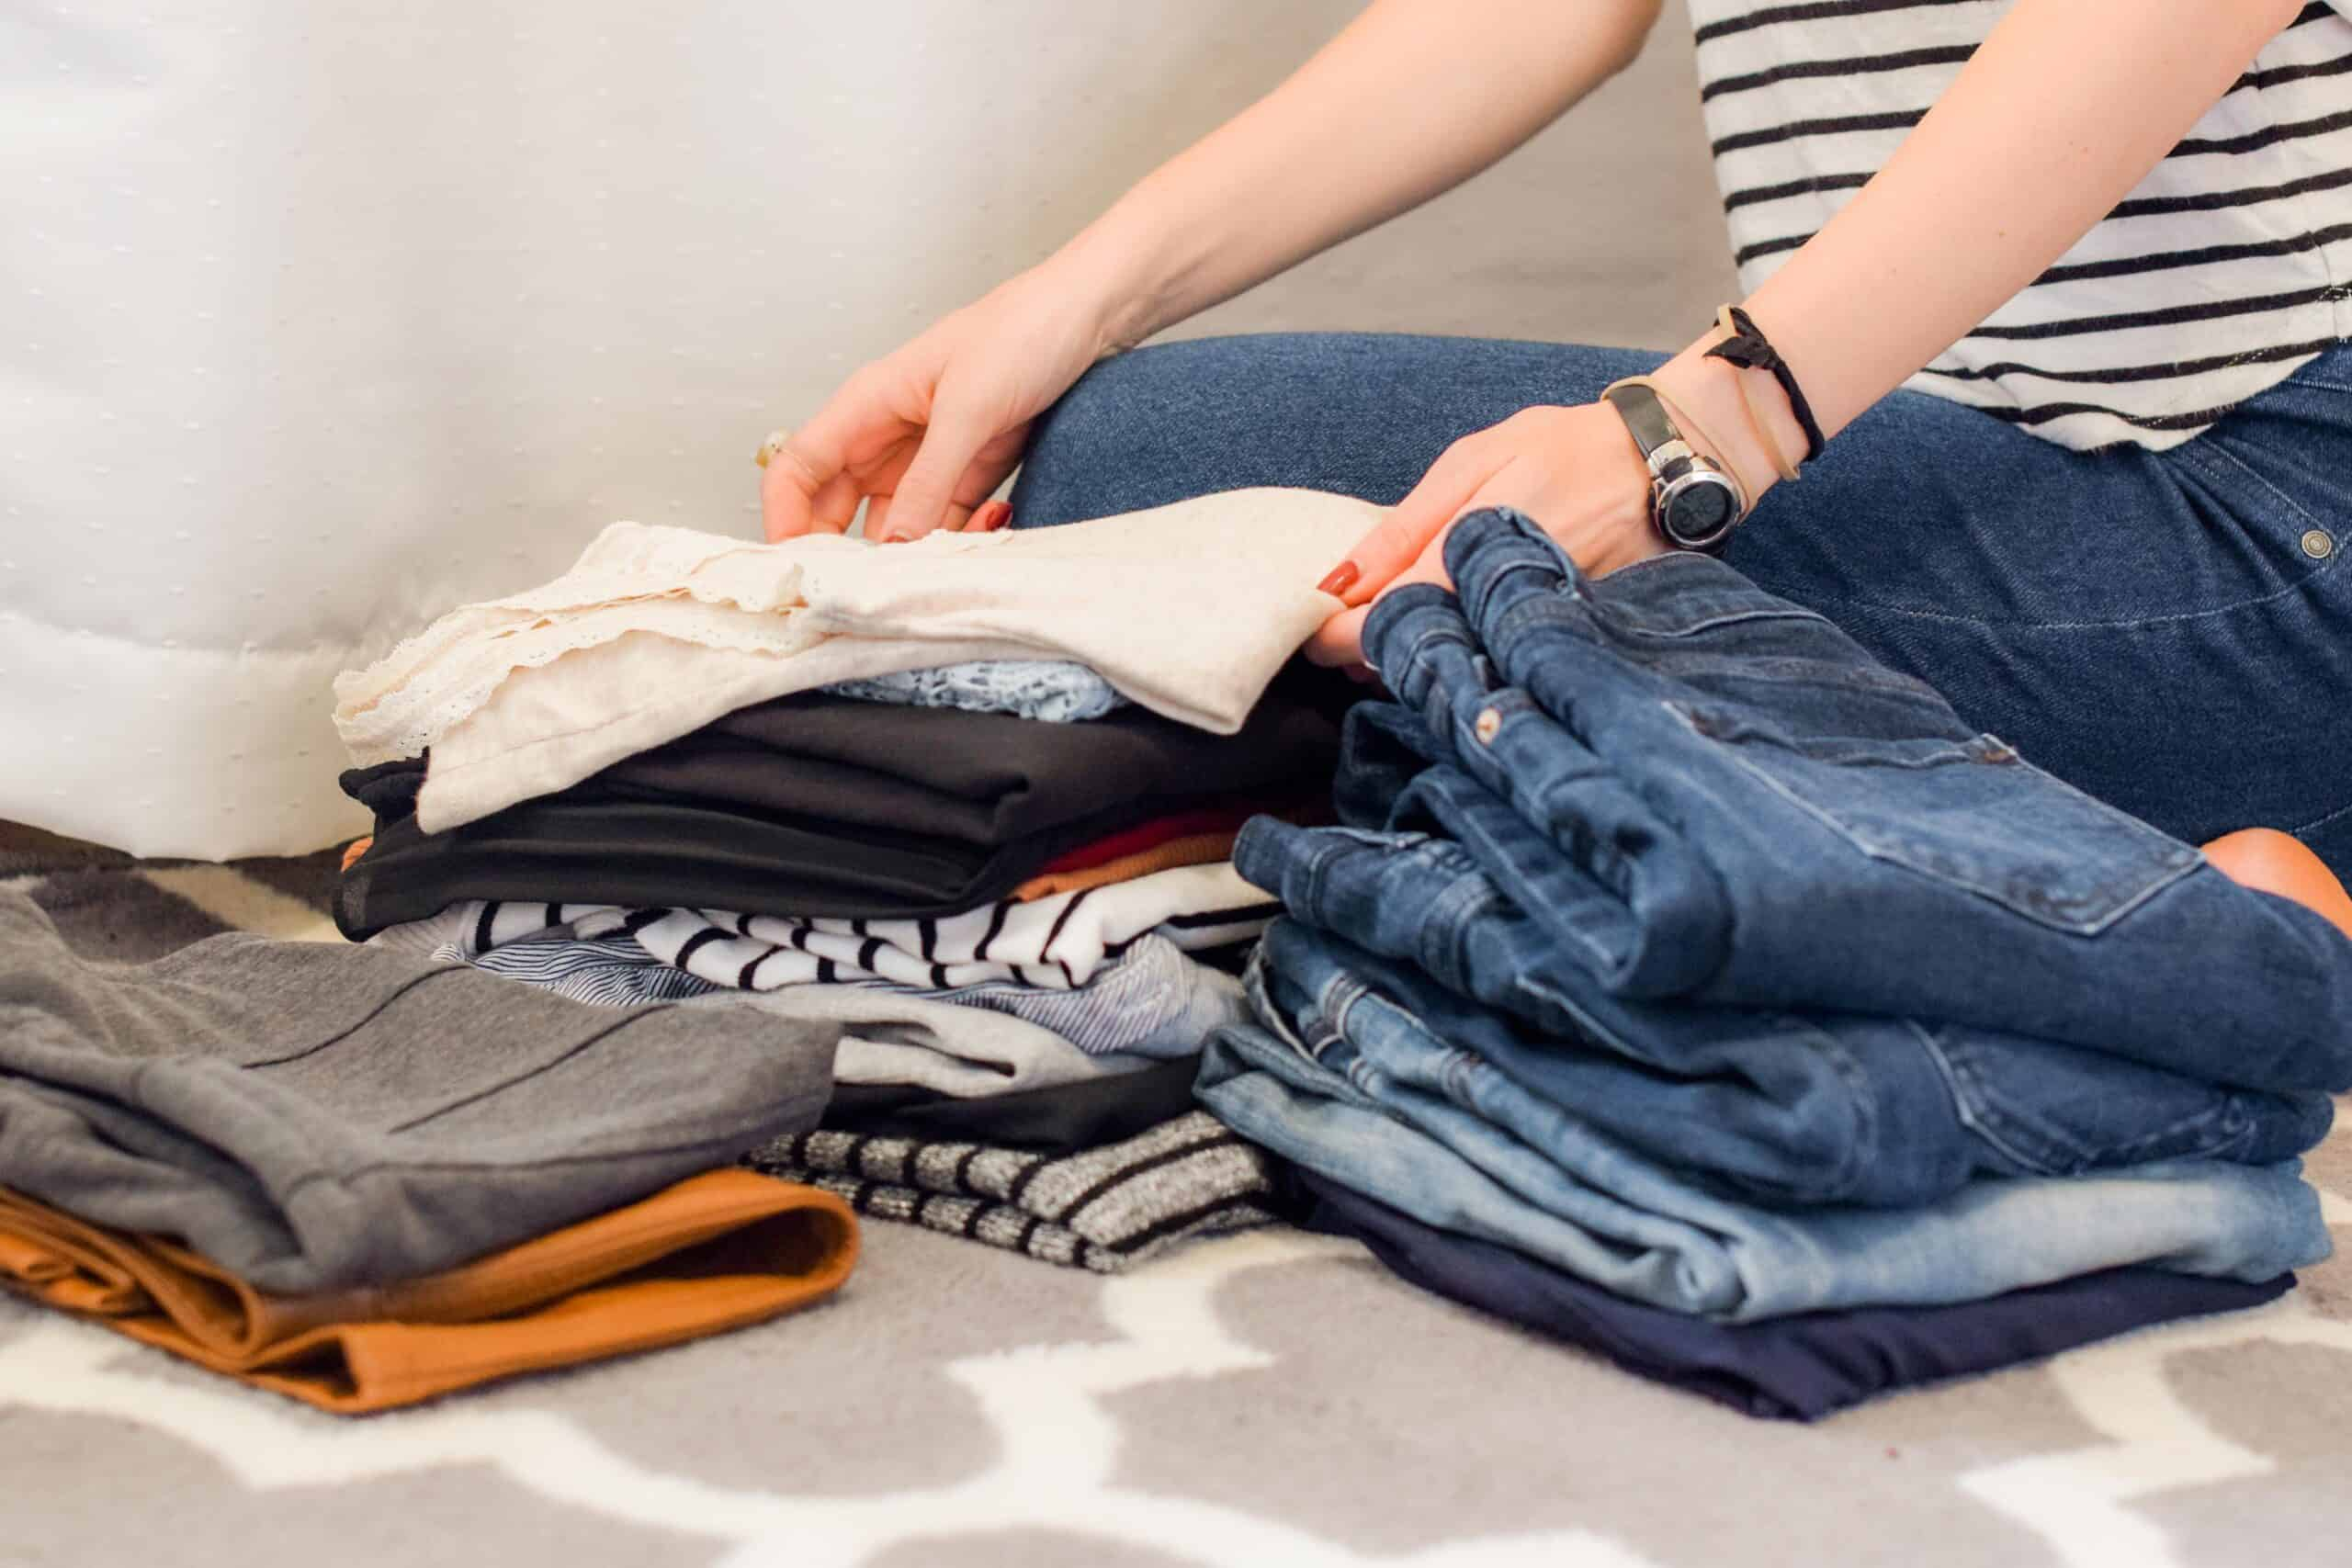 organize and clean home